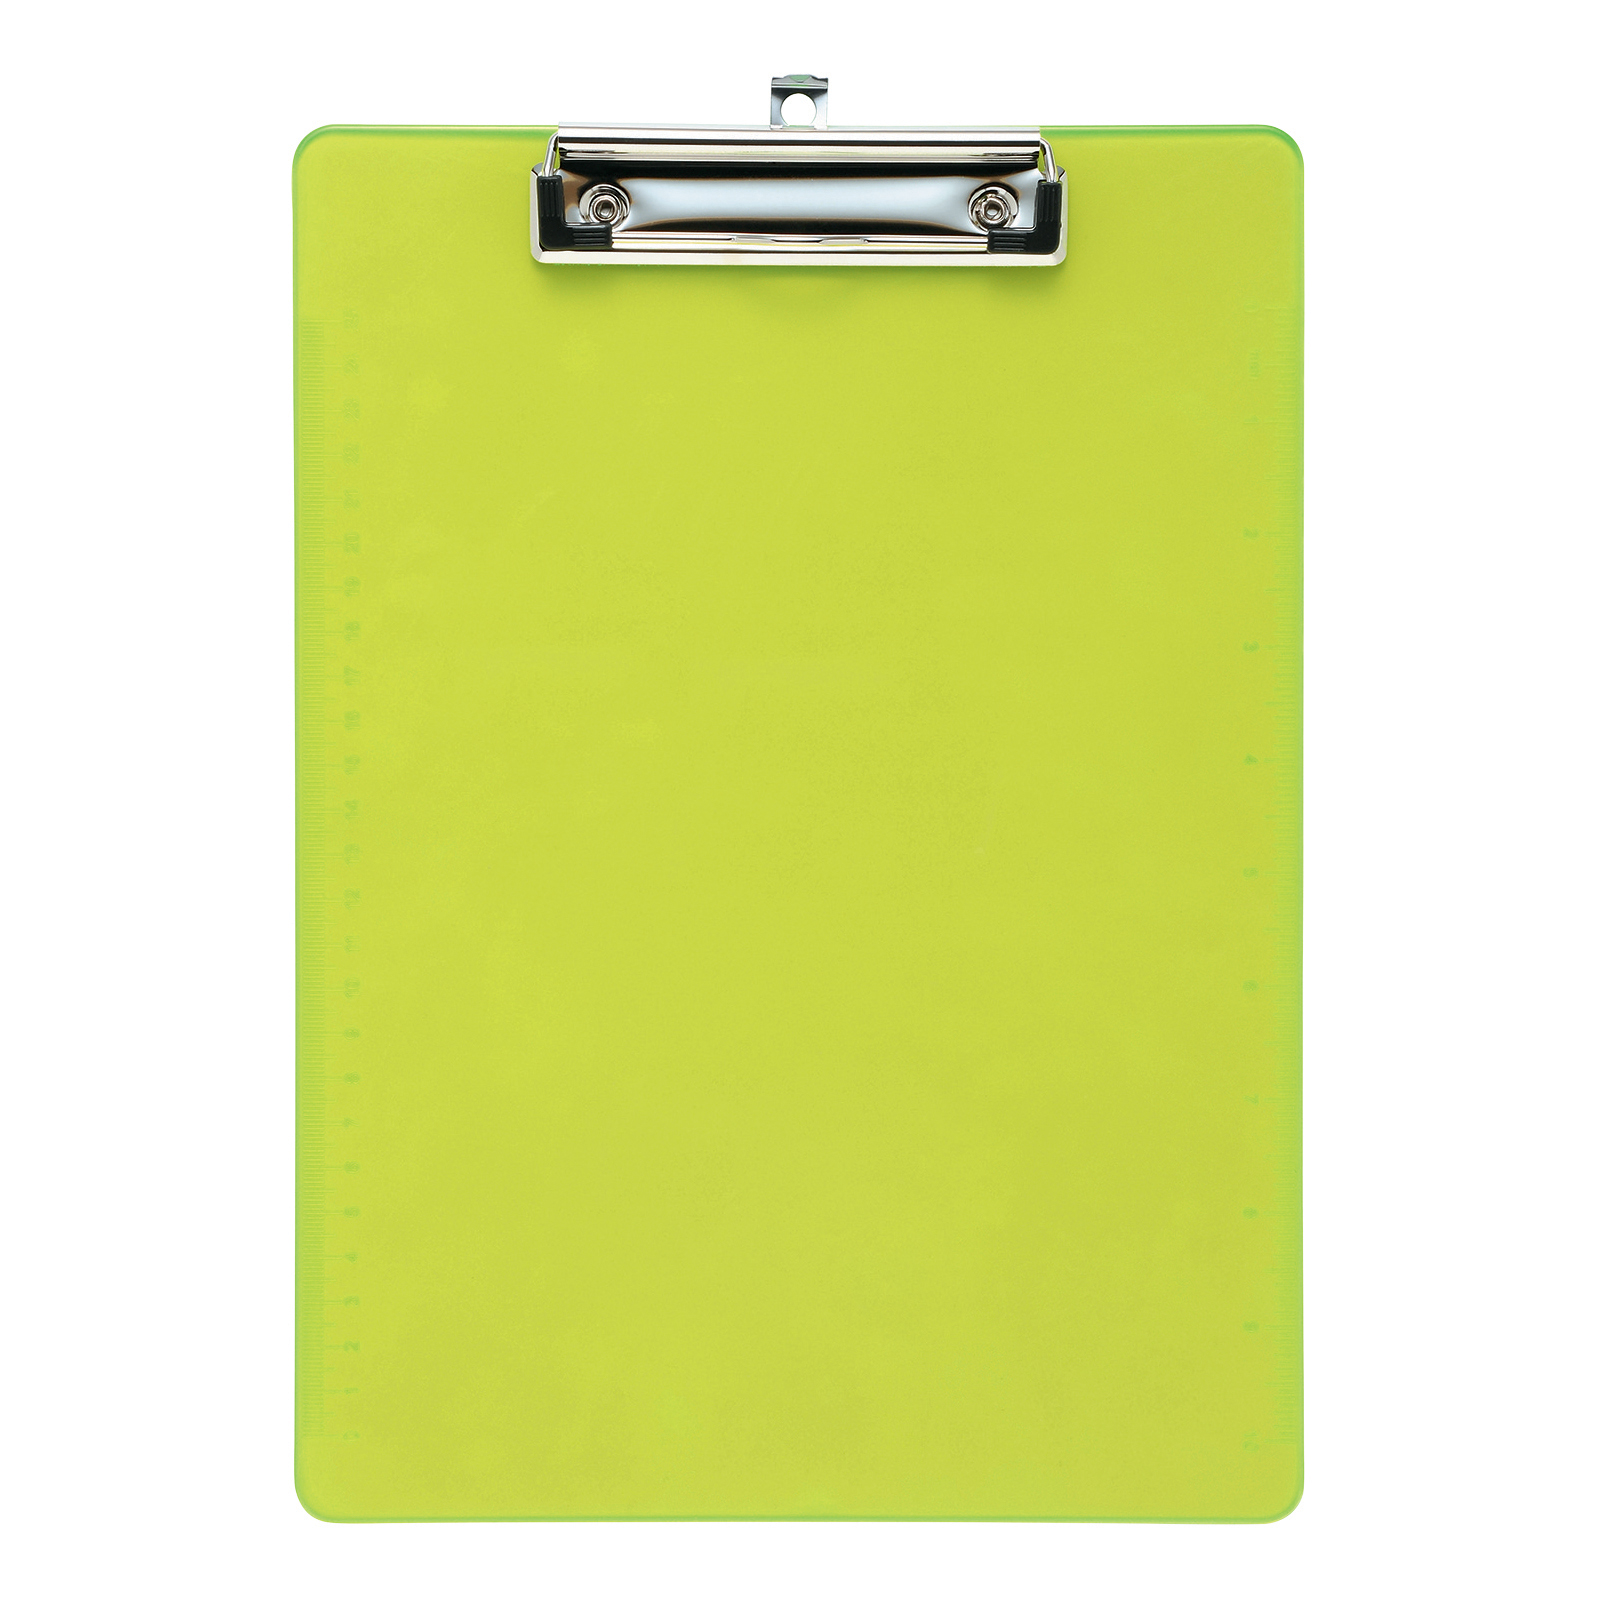 Clipboards 5 Star Office Clipboard Solid Plastic Durable with Rounded Corners A4 Green